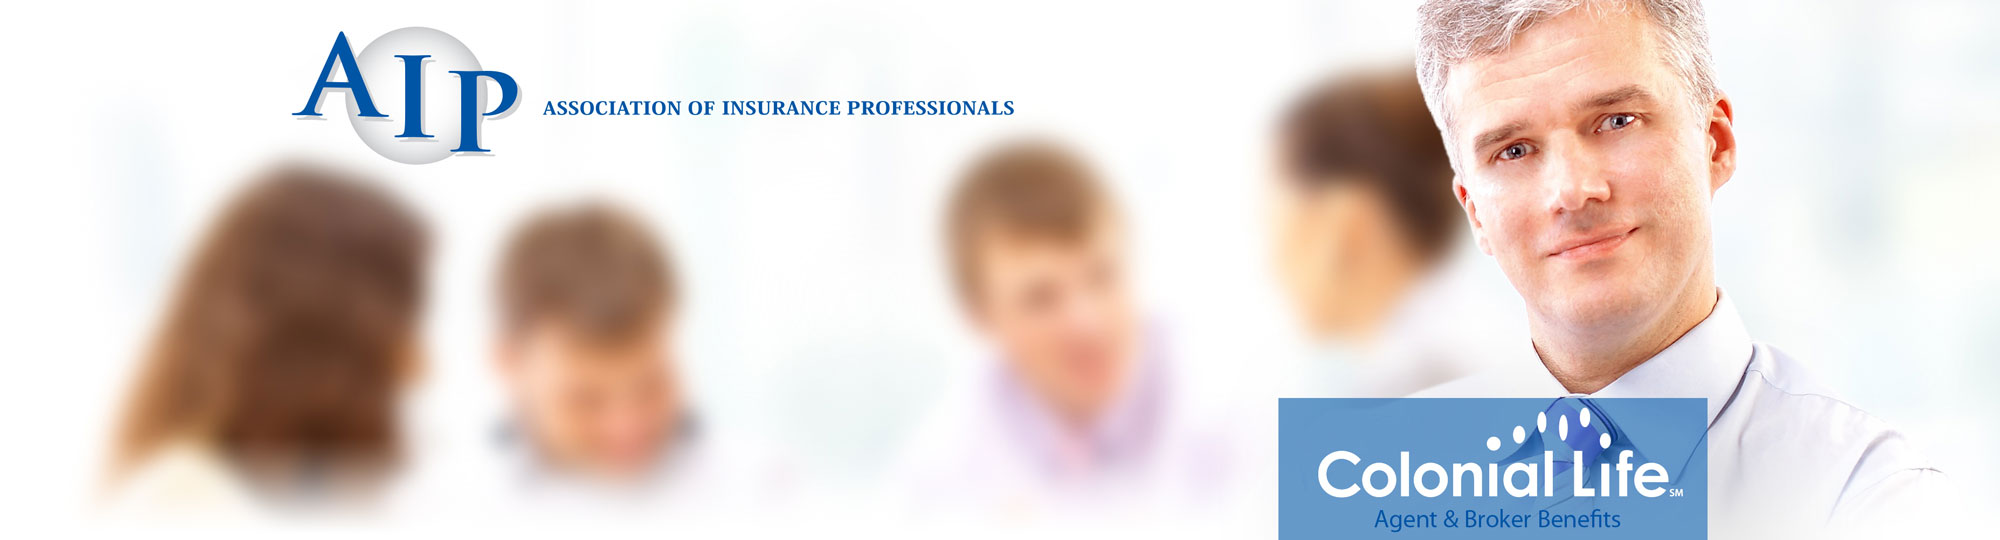 Association of Insurance Professionals (AIP)